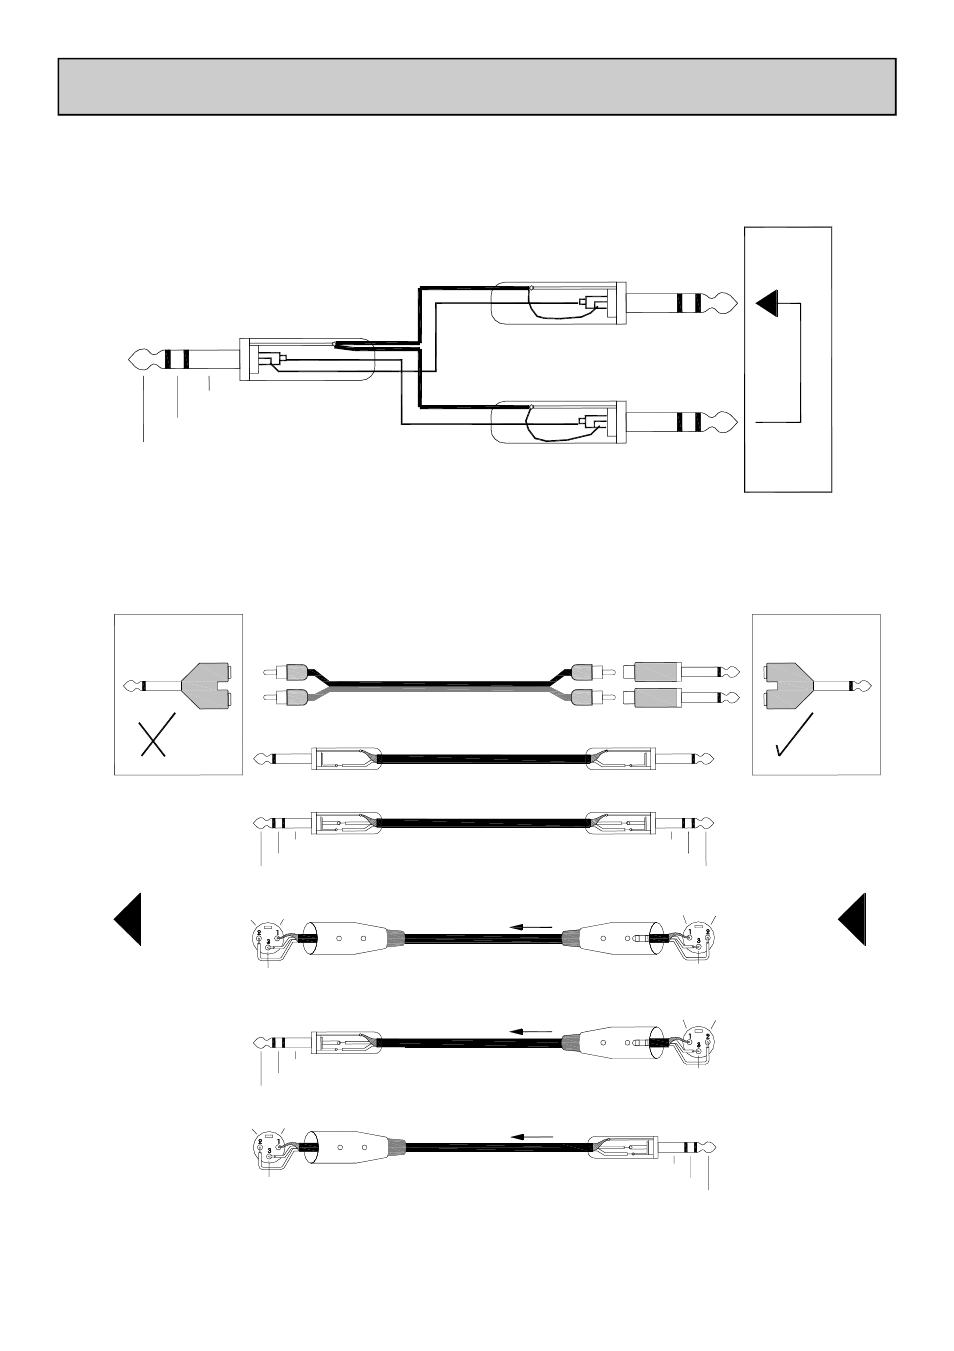 [GJFJ_338]  Insert cable wiring, General wiring information, Y-adapter no | Allen&Heath  XB-14-2 User Manual | Page 34 / 37 | Original mode | Insert Cable Wiring Diagram |  | Manuals Directory